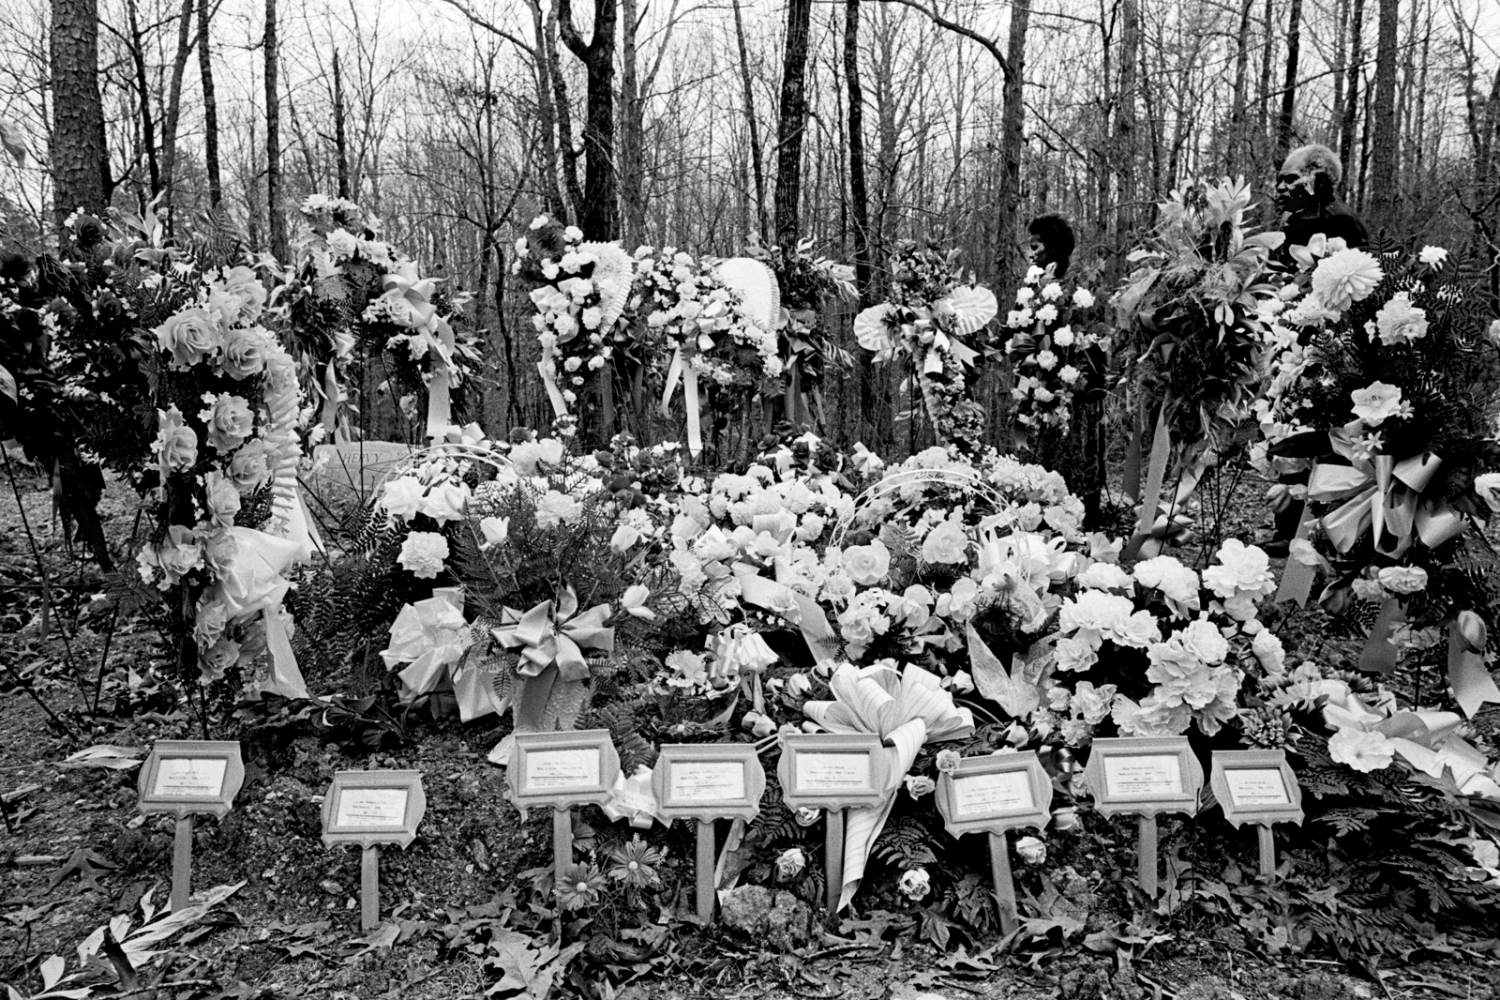 Mourners covered the grave site of the eight victims with floral tributes. Minnie Evans decided to use her anger and grief to try to pass some building codes (there were none in Bruce according to fire chief Charles Rogers). In April of 1993, the governor signed into law a measure requiring that barred windows be easily opened from inside. 1993